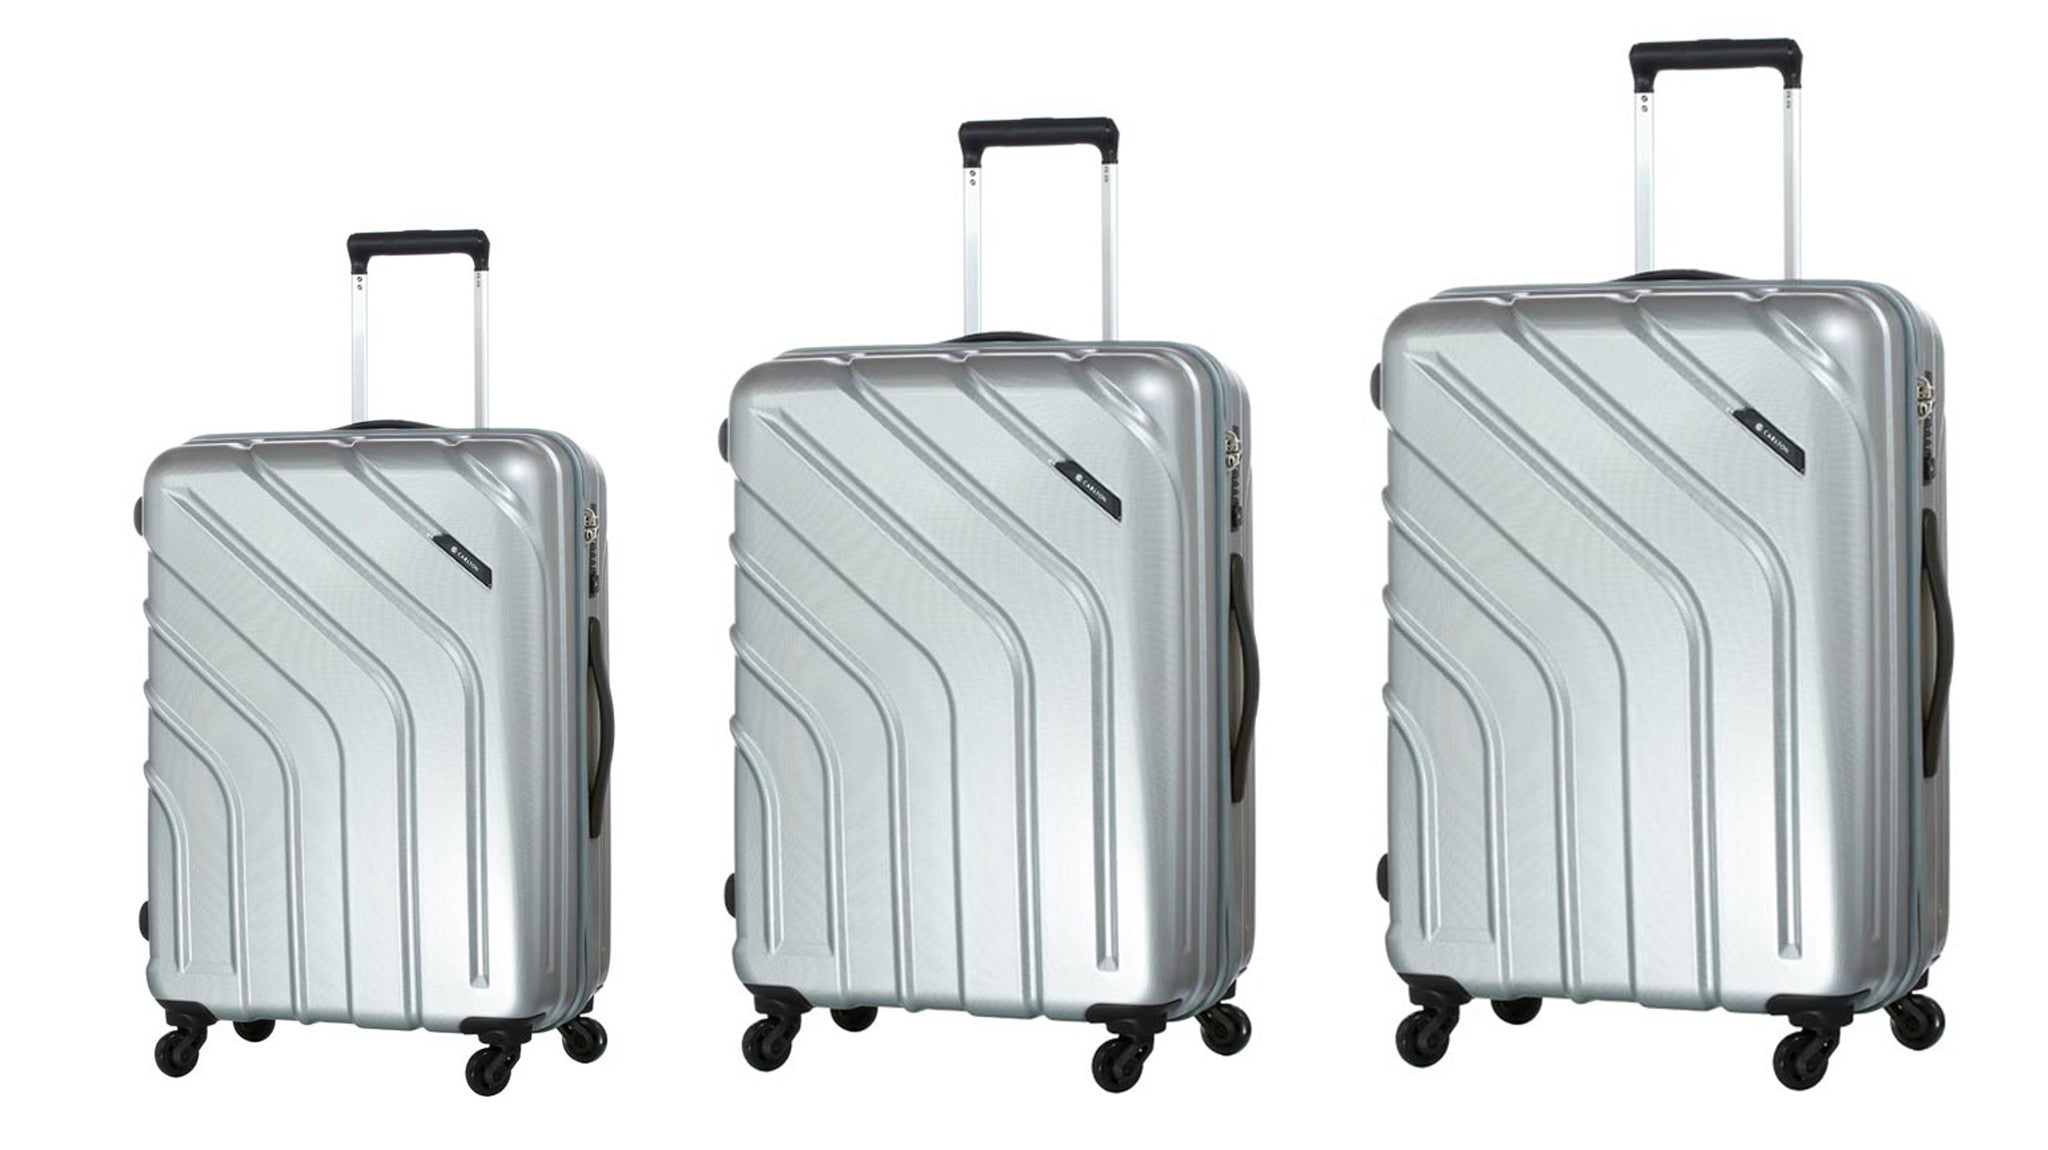 Carlton Stellar Luggage Set of 3 Silver